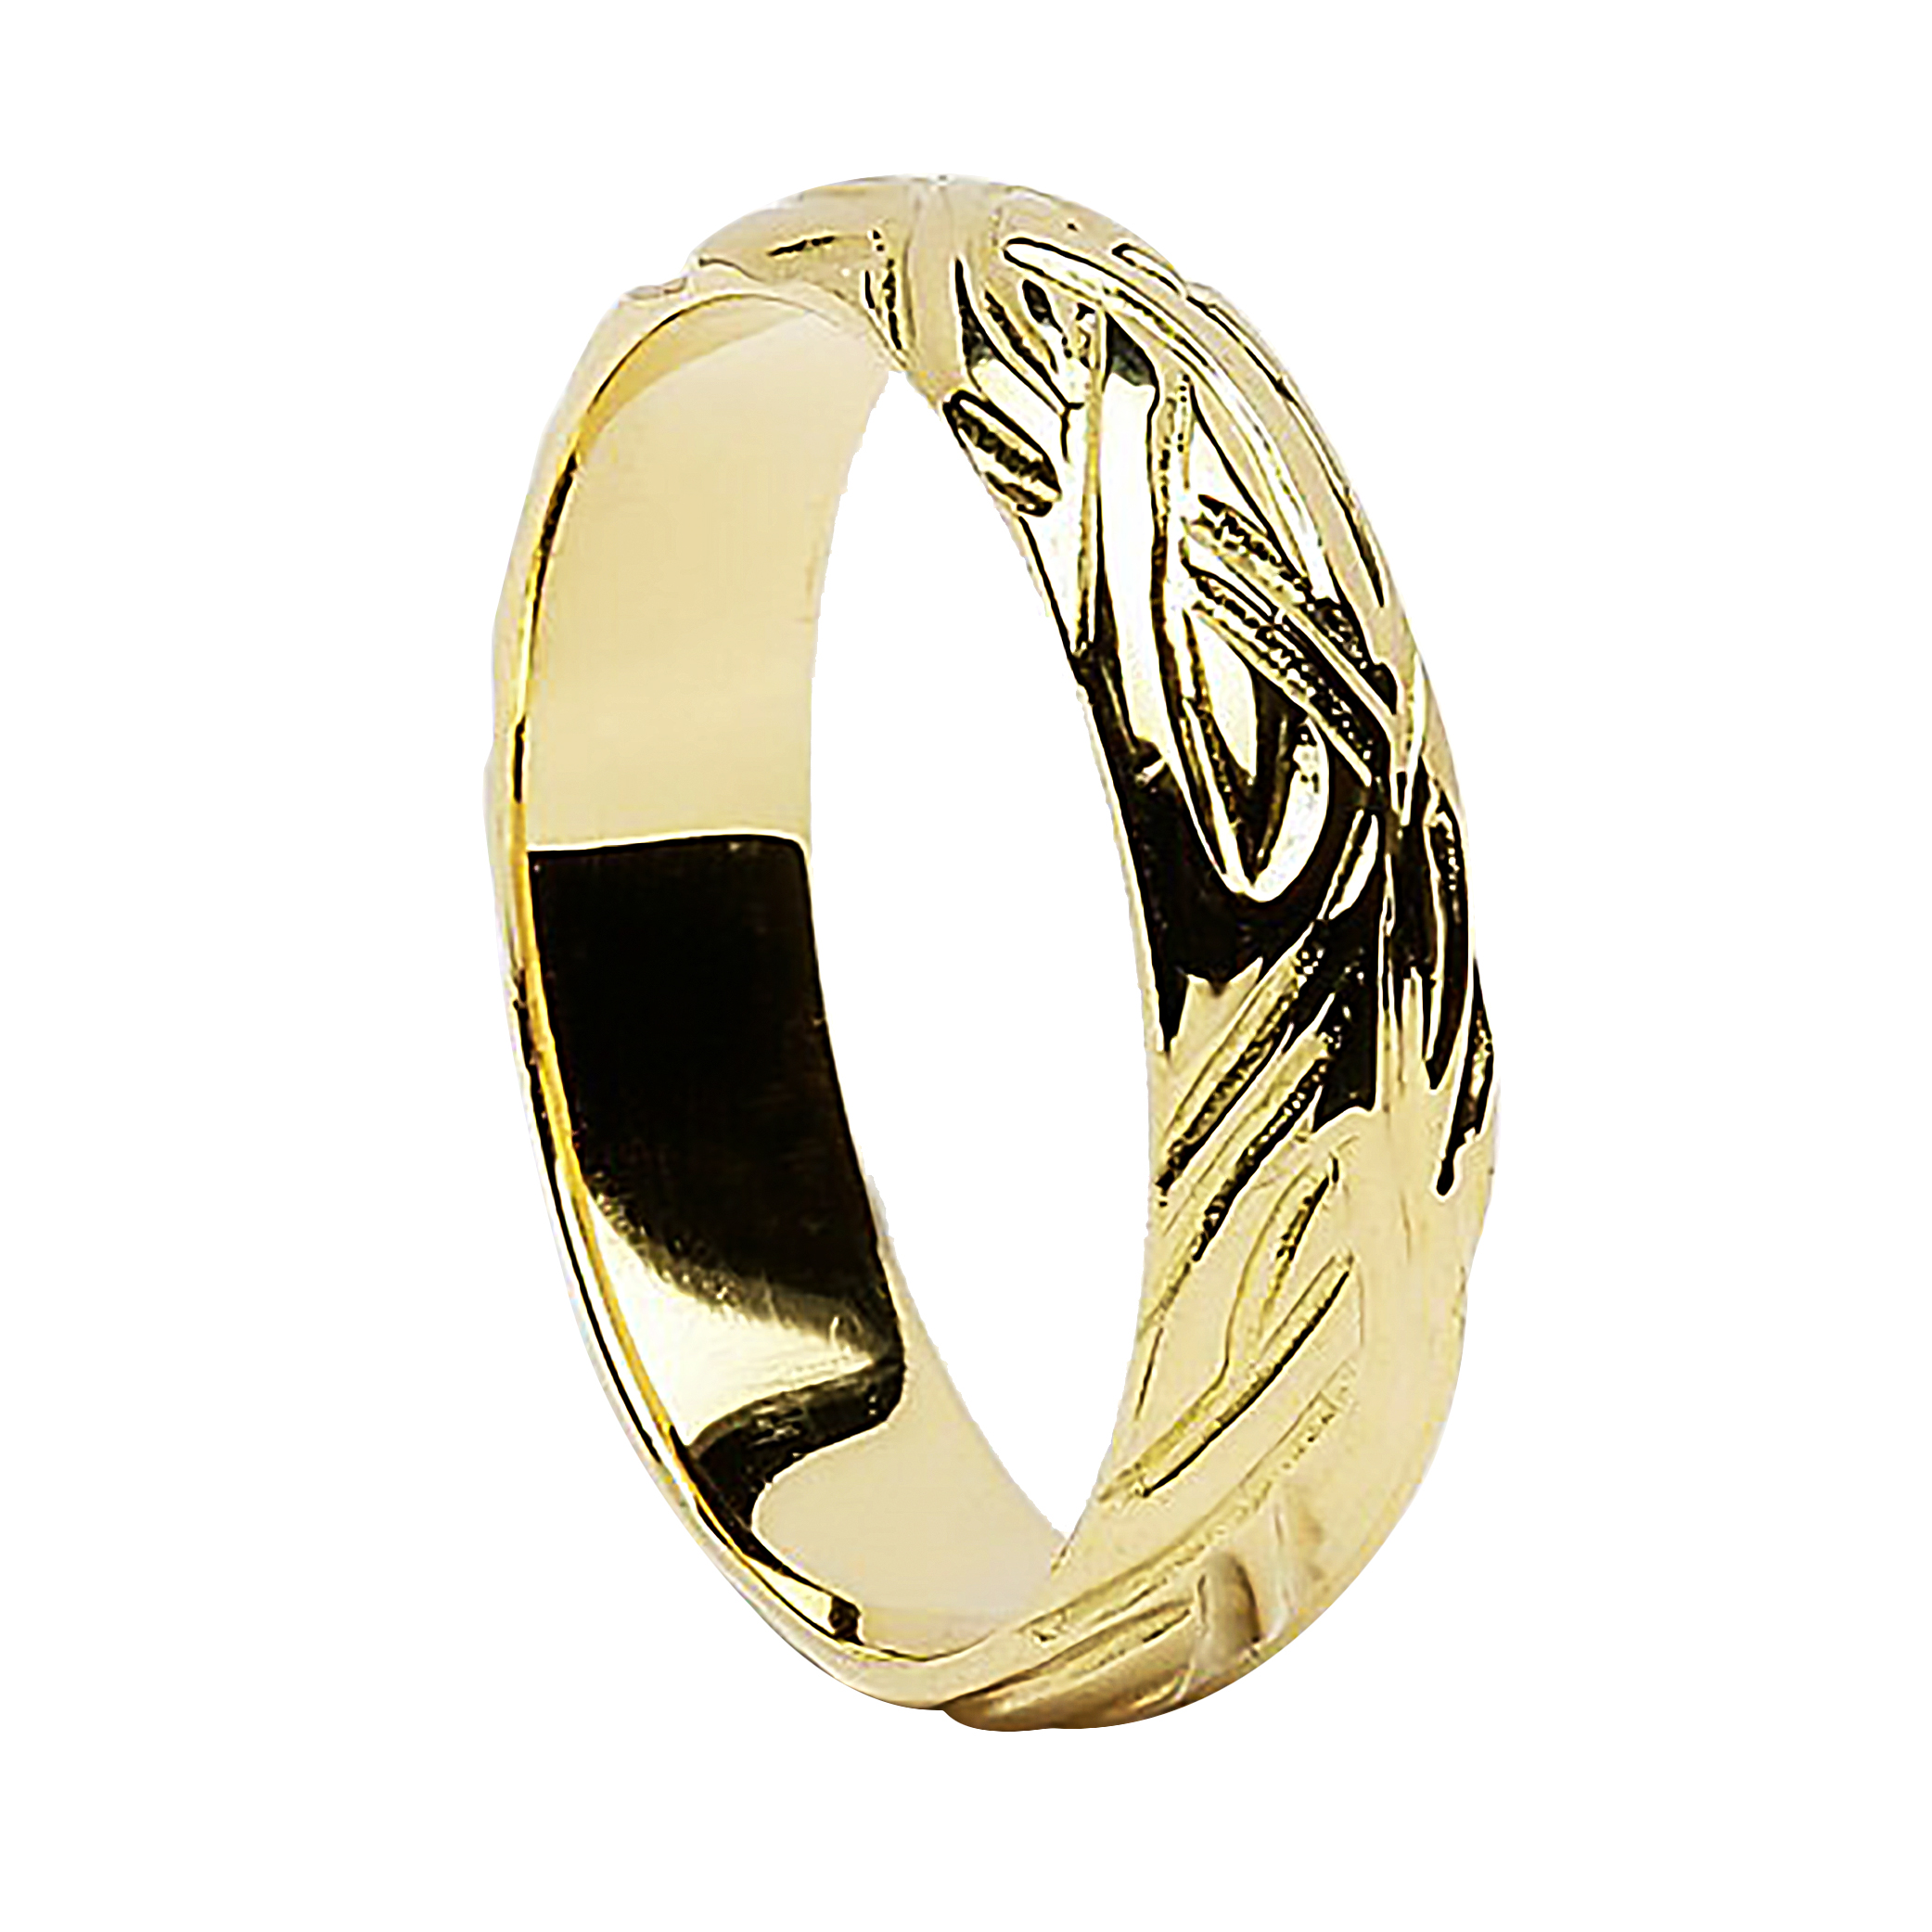 irish gold wedding ring - livia ring - 10k gold